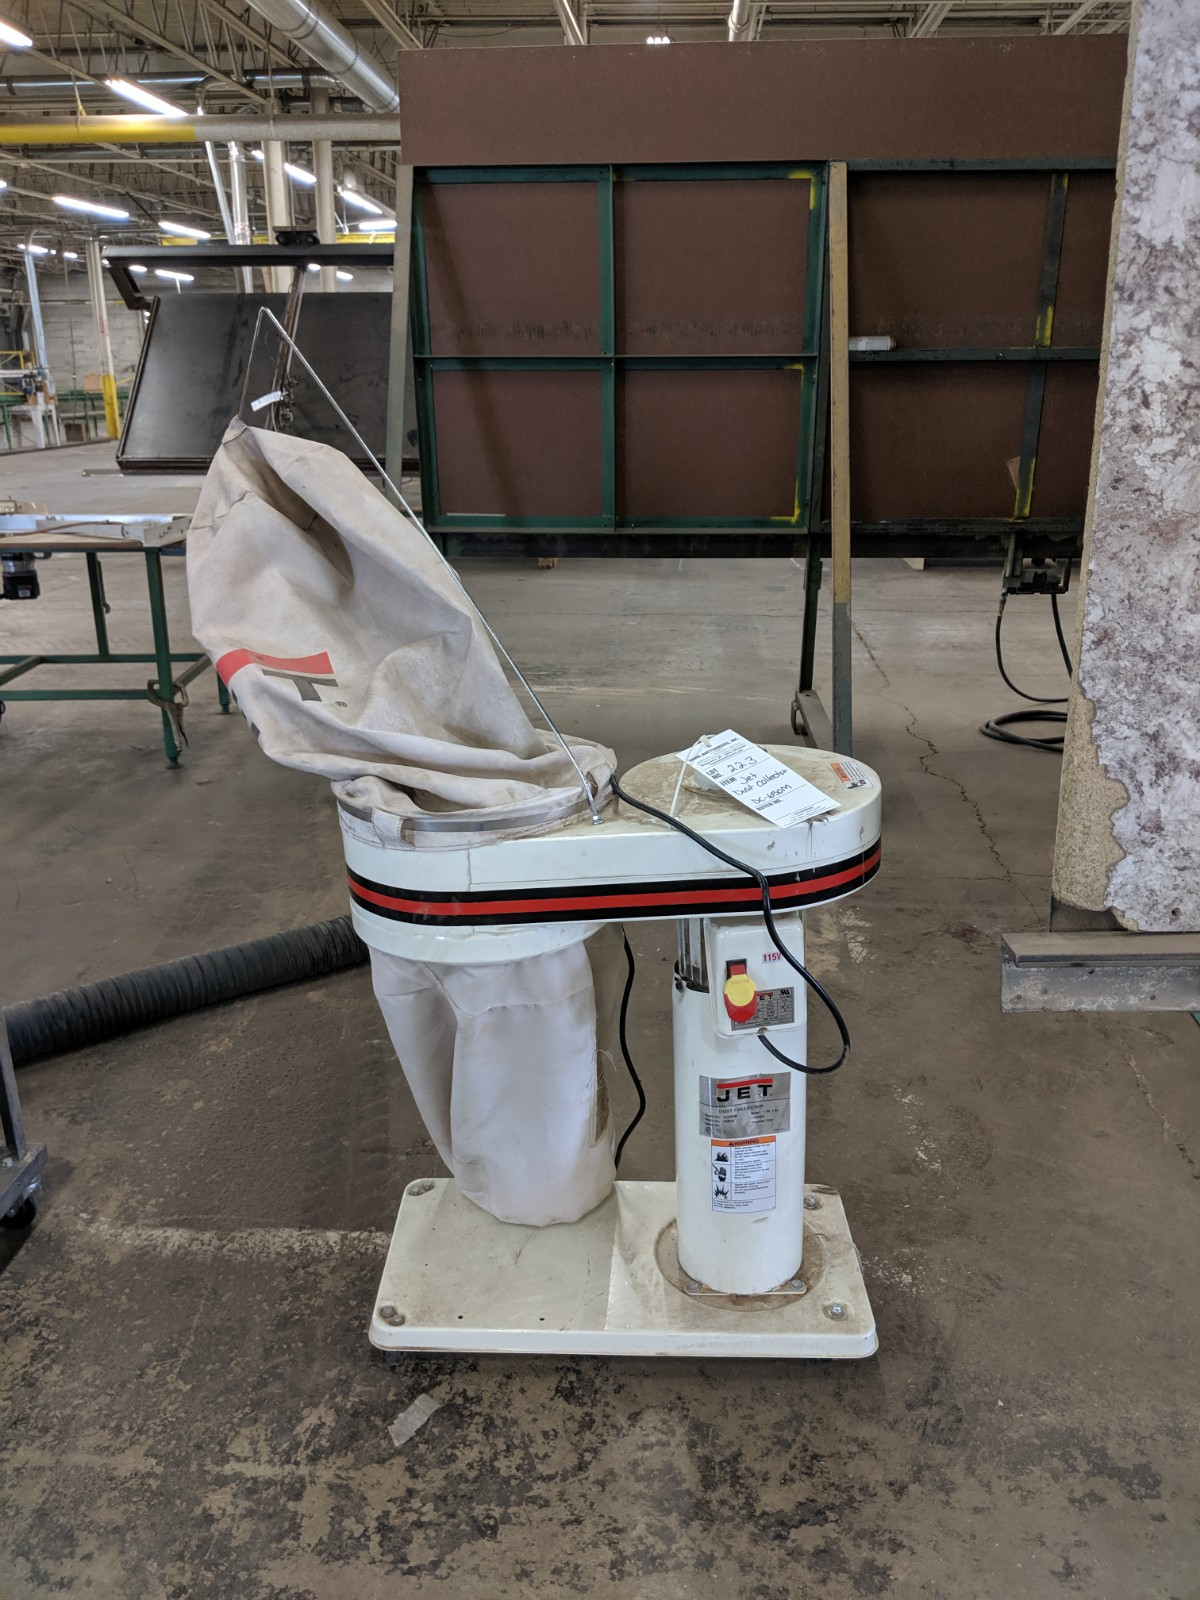 Lot 223 - Jet Dust Collector